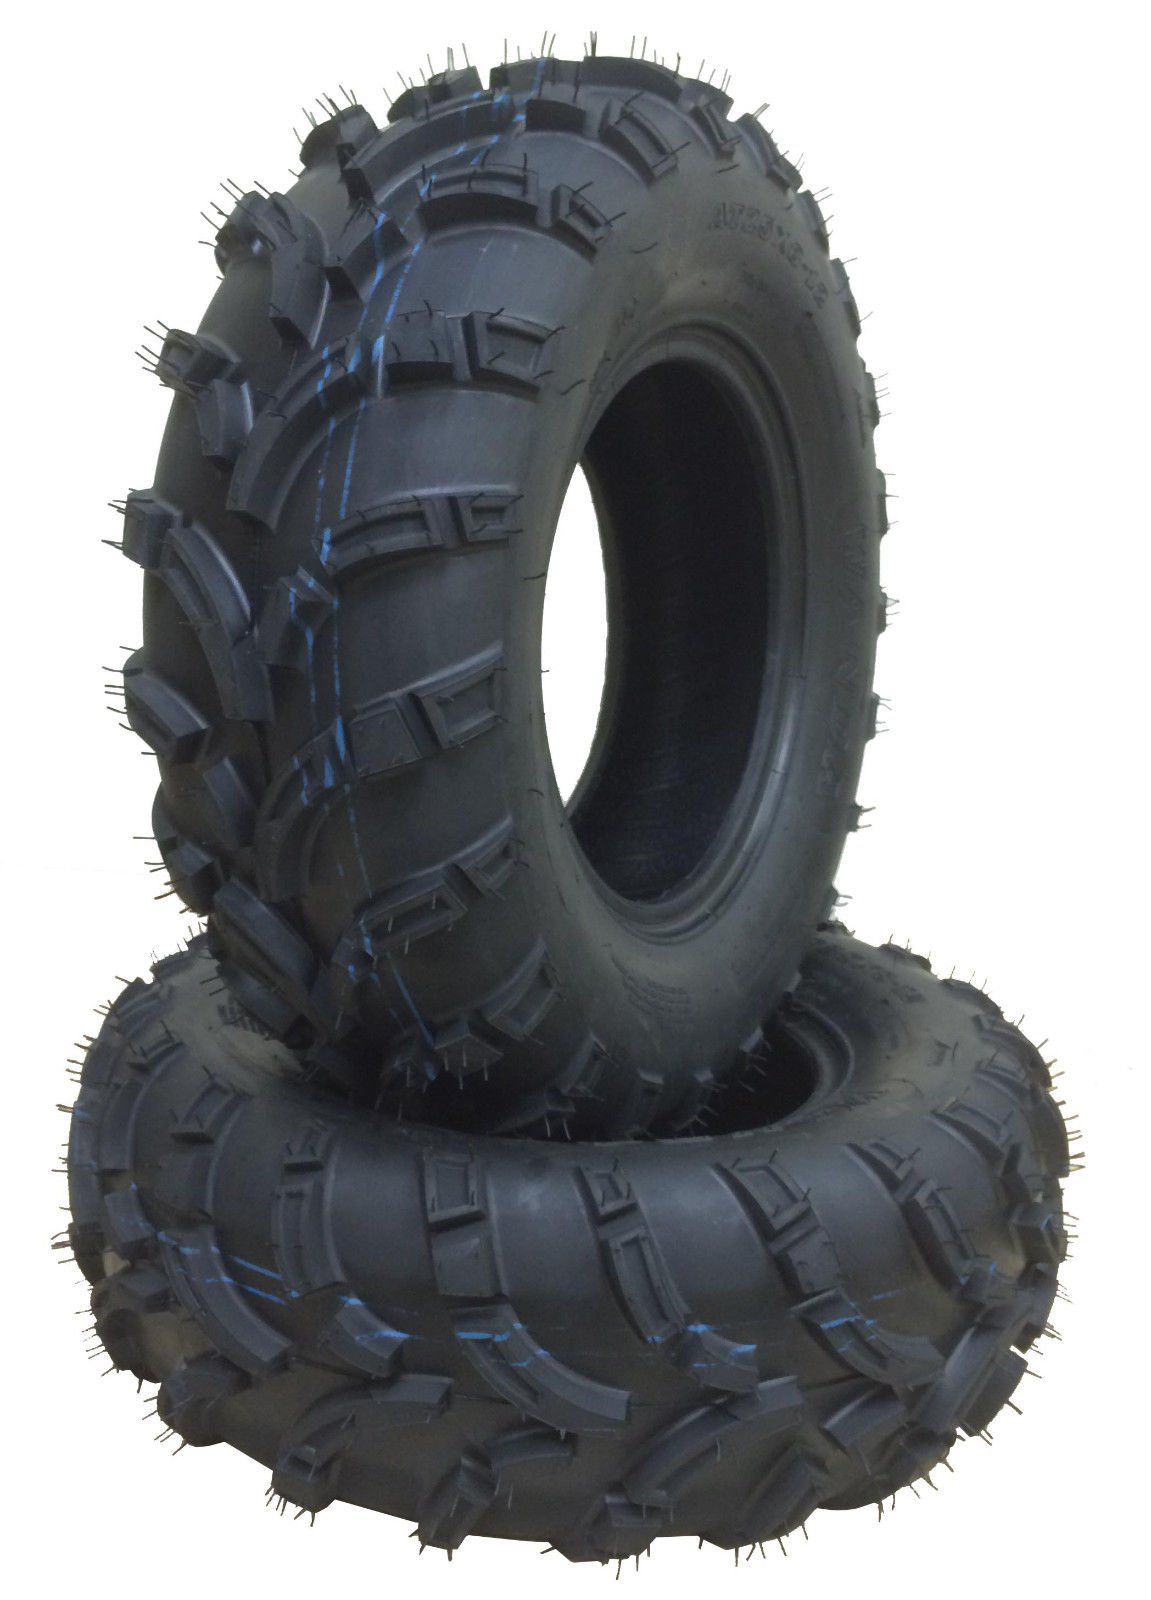 4 New WANDA ATV Tires AT 25x8-12 Front & 25x10-12 Rear /6PR -10243/10244 6PR P373 by Skroutz by Wanda (Image #4)